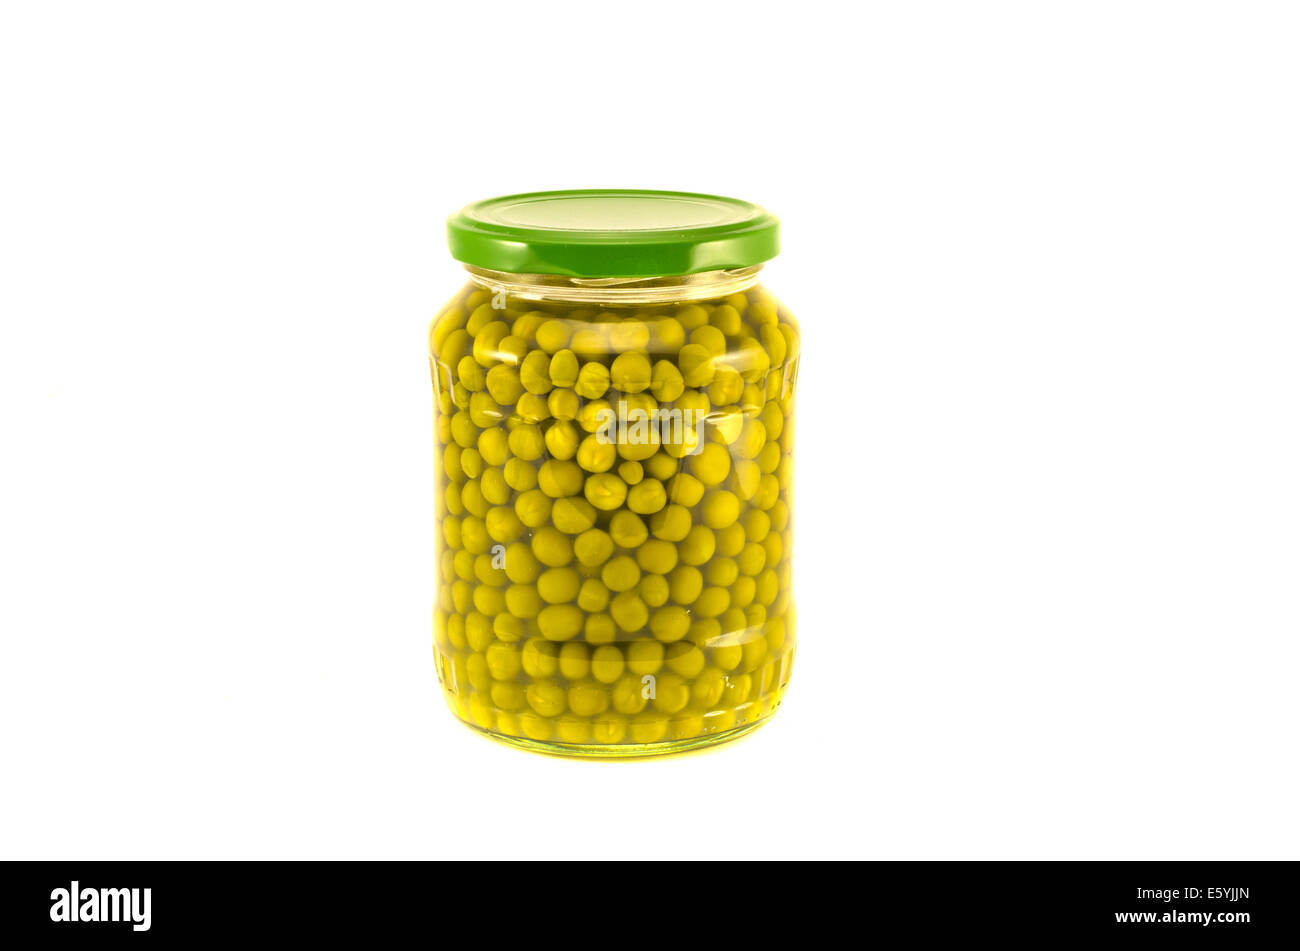 green peas vegetables canned preserved in glass jars pots isolated on white background Stock Photo